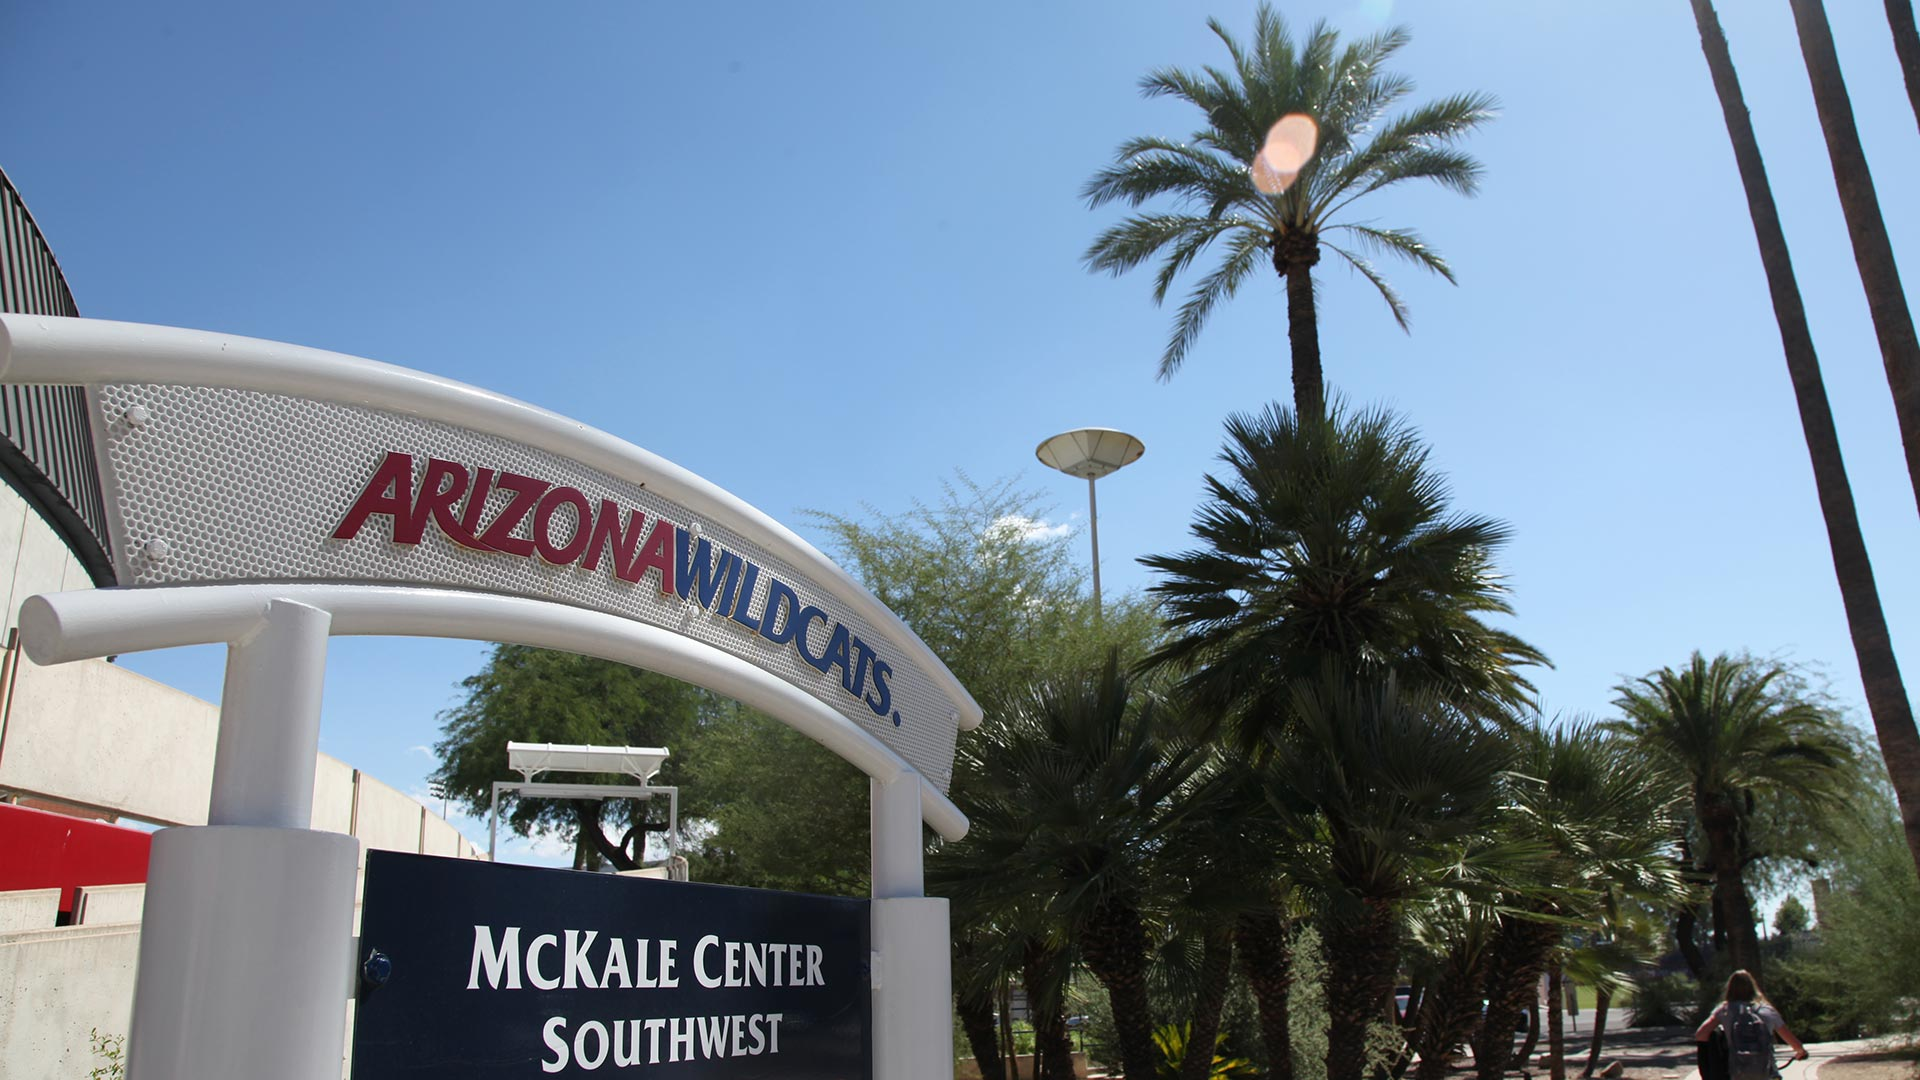 McKale Center, home to the Arizona basketball program.